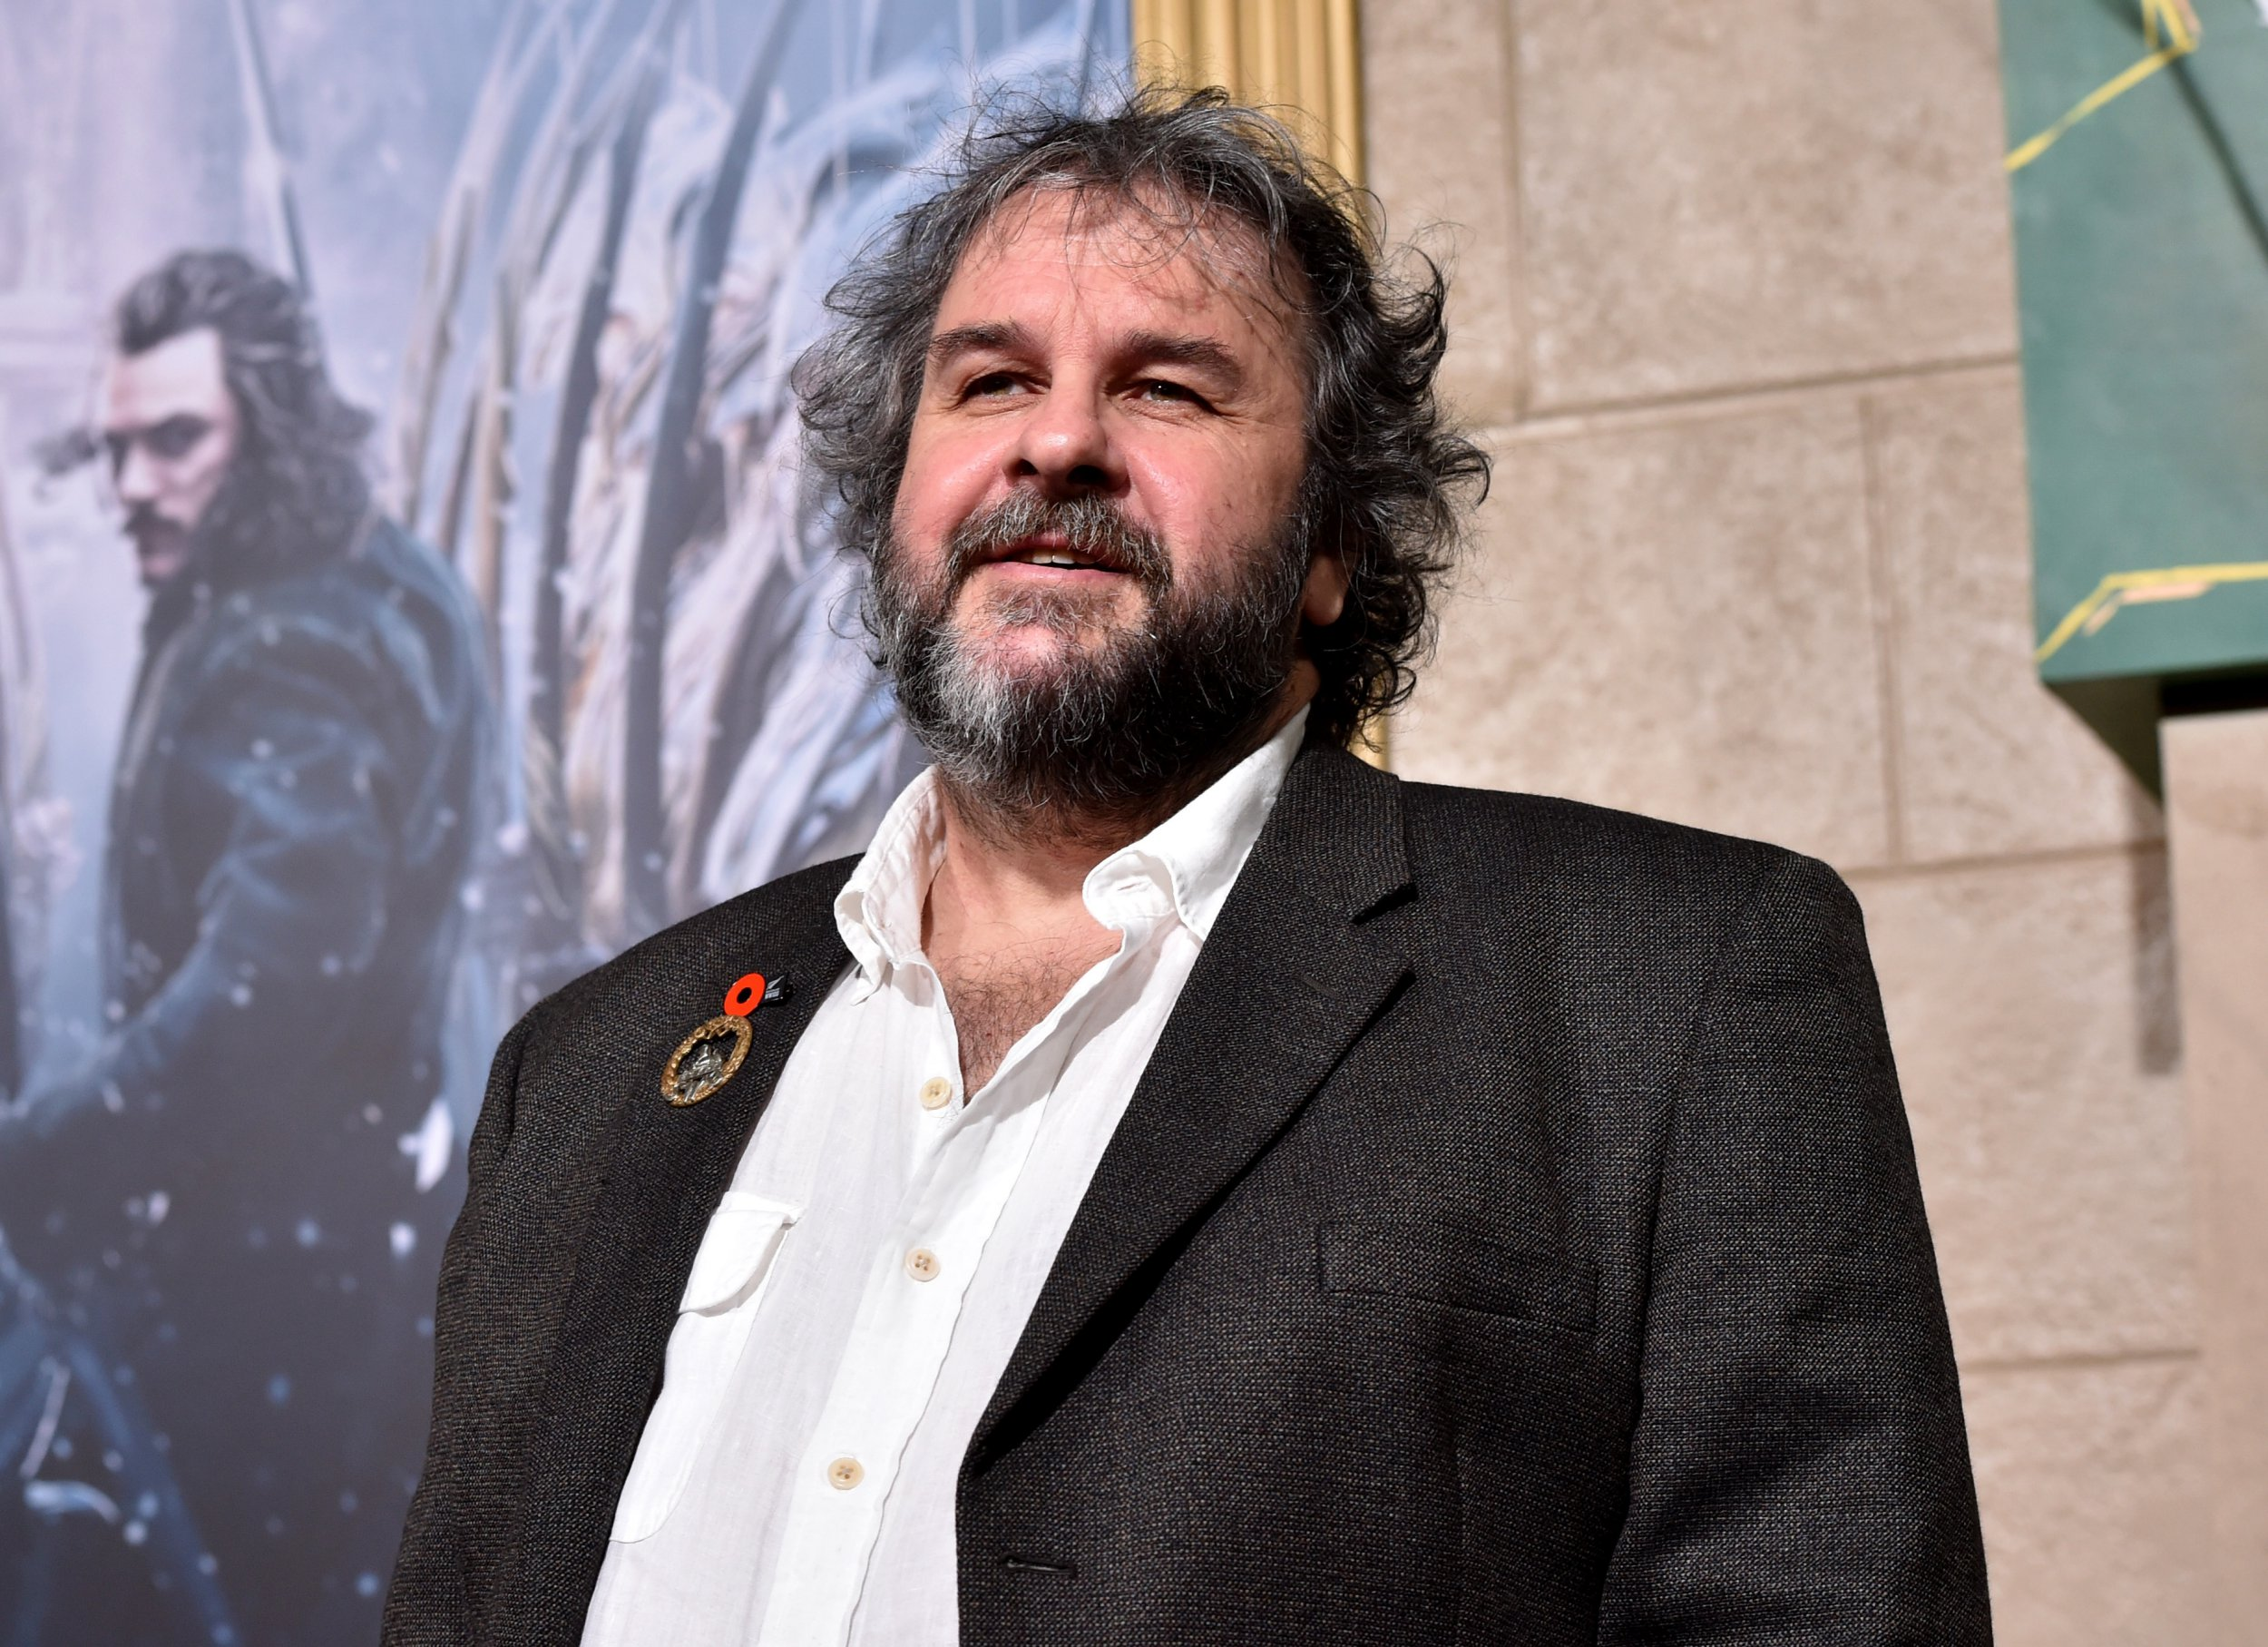 """HOLLYWOOD, CA - DECEMBER 09: Writer/director/producer Peter Jackson attends the premiere of New Line Cinema, MGM Pictures and Warner Bros. Pictures' """"The Hobbit: The Battle of the Five Armies"""" at Dolby Theatre on December 9, 2014 in Hollywood, California. (Photo by Kevin Winter/Getty Images)"""